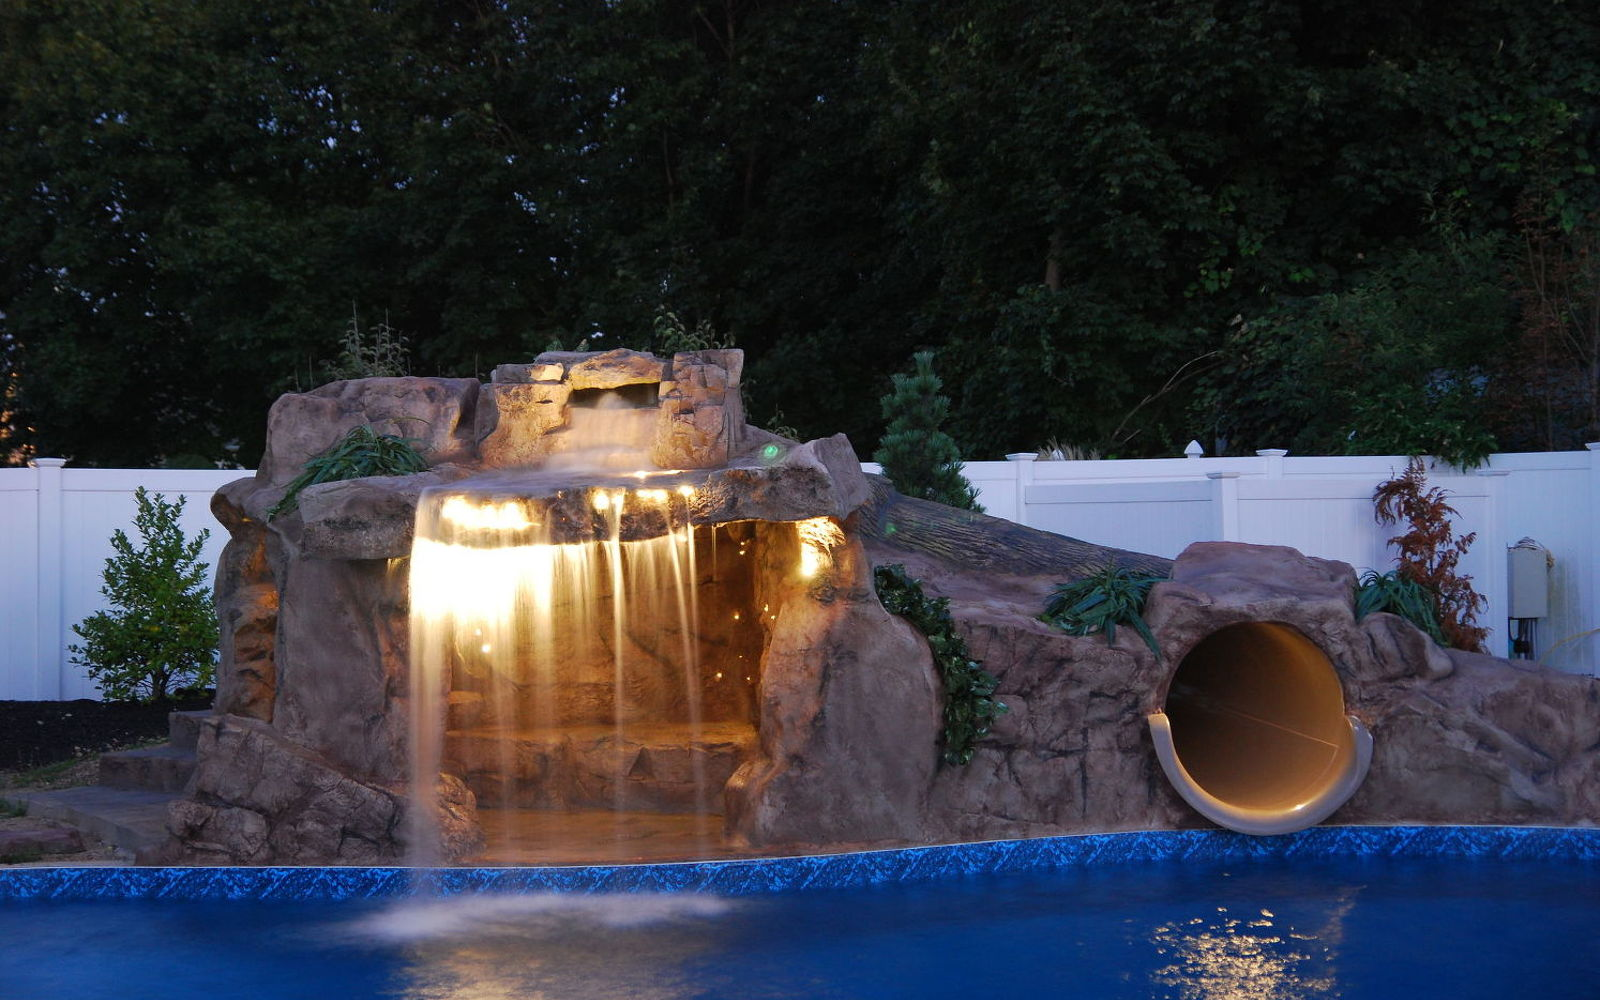 s wow 11 dreamy ideas for people who have backyard pools, outdoor living, pool designs, Commission an awesome slide and grotto